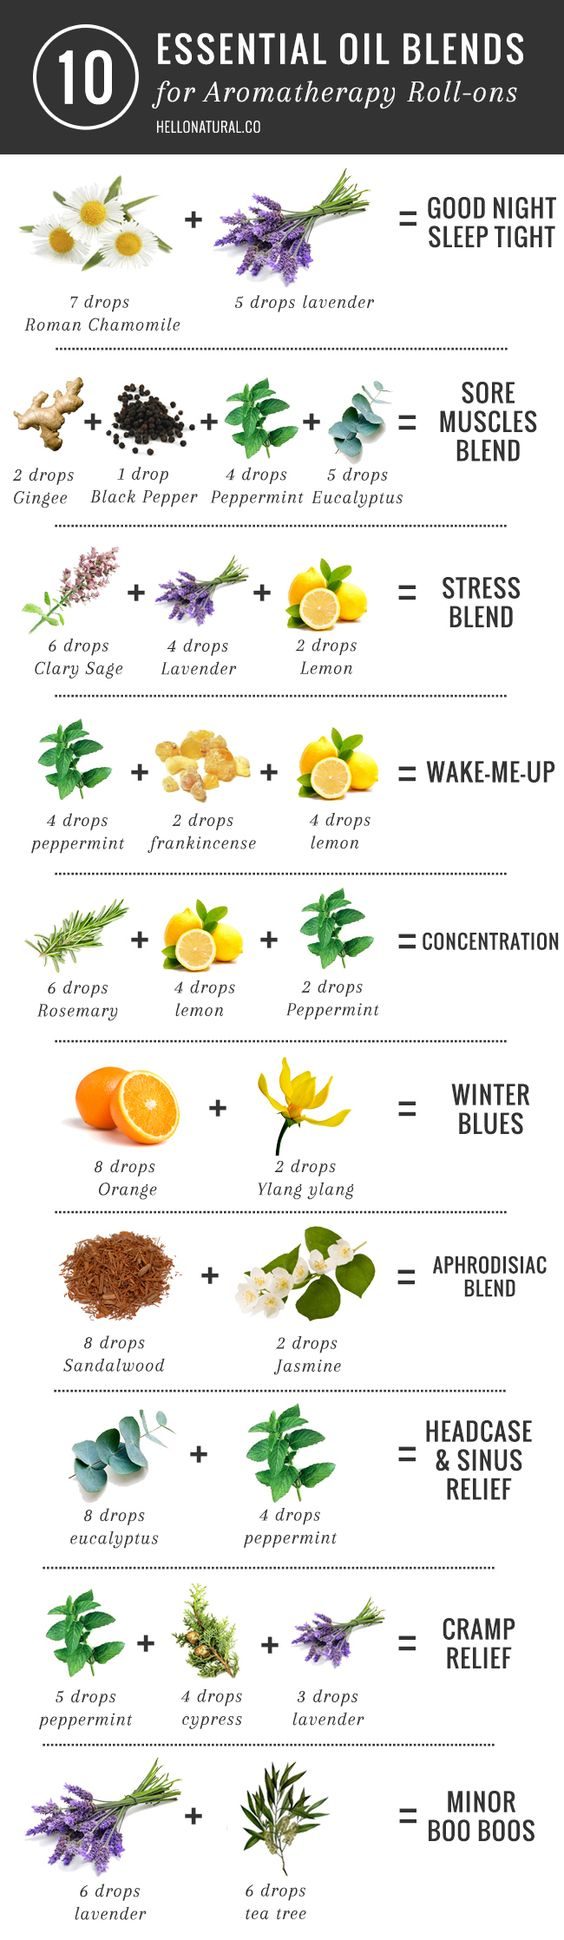 How to Make Aromatherapy Roll-Ons | HelloNatural.co: